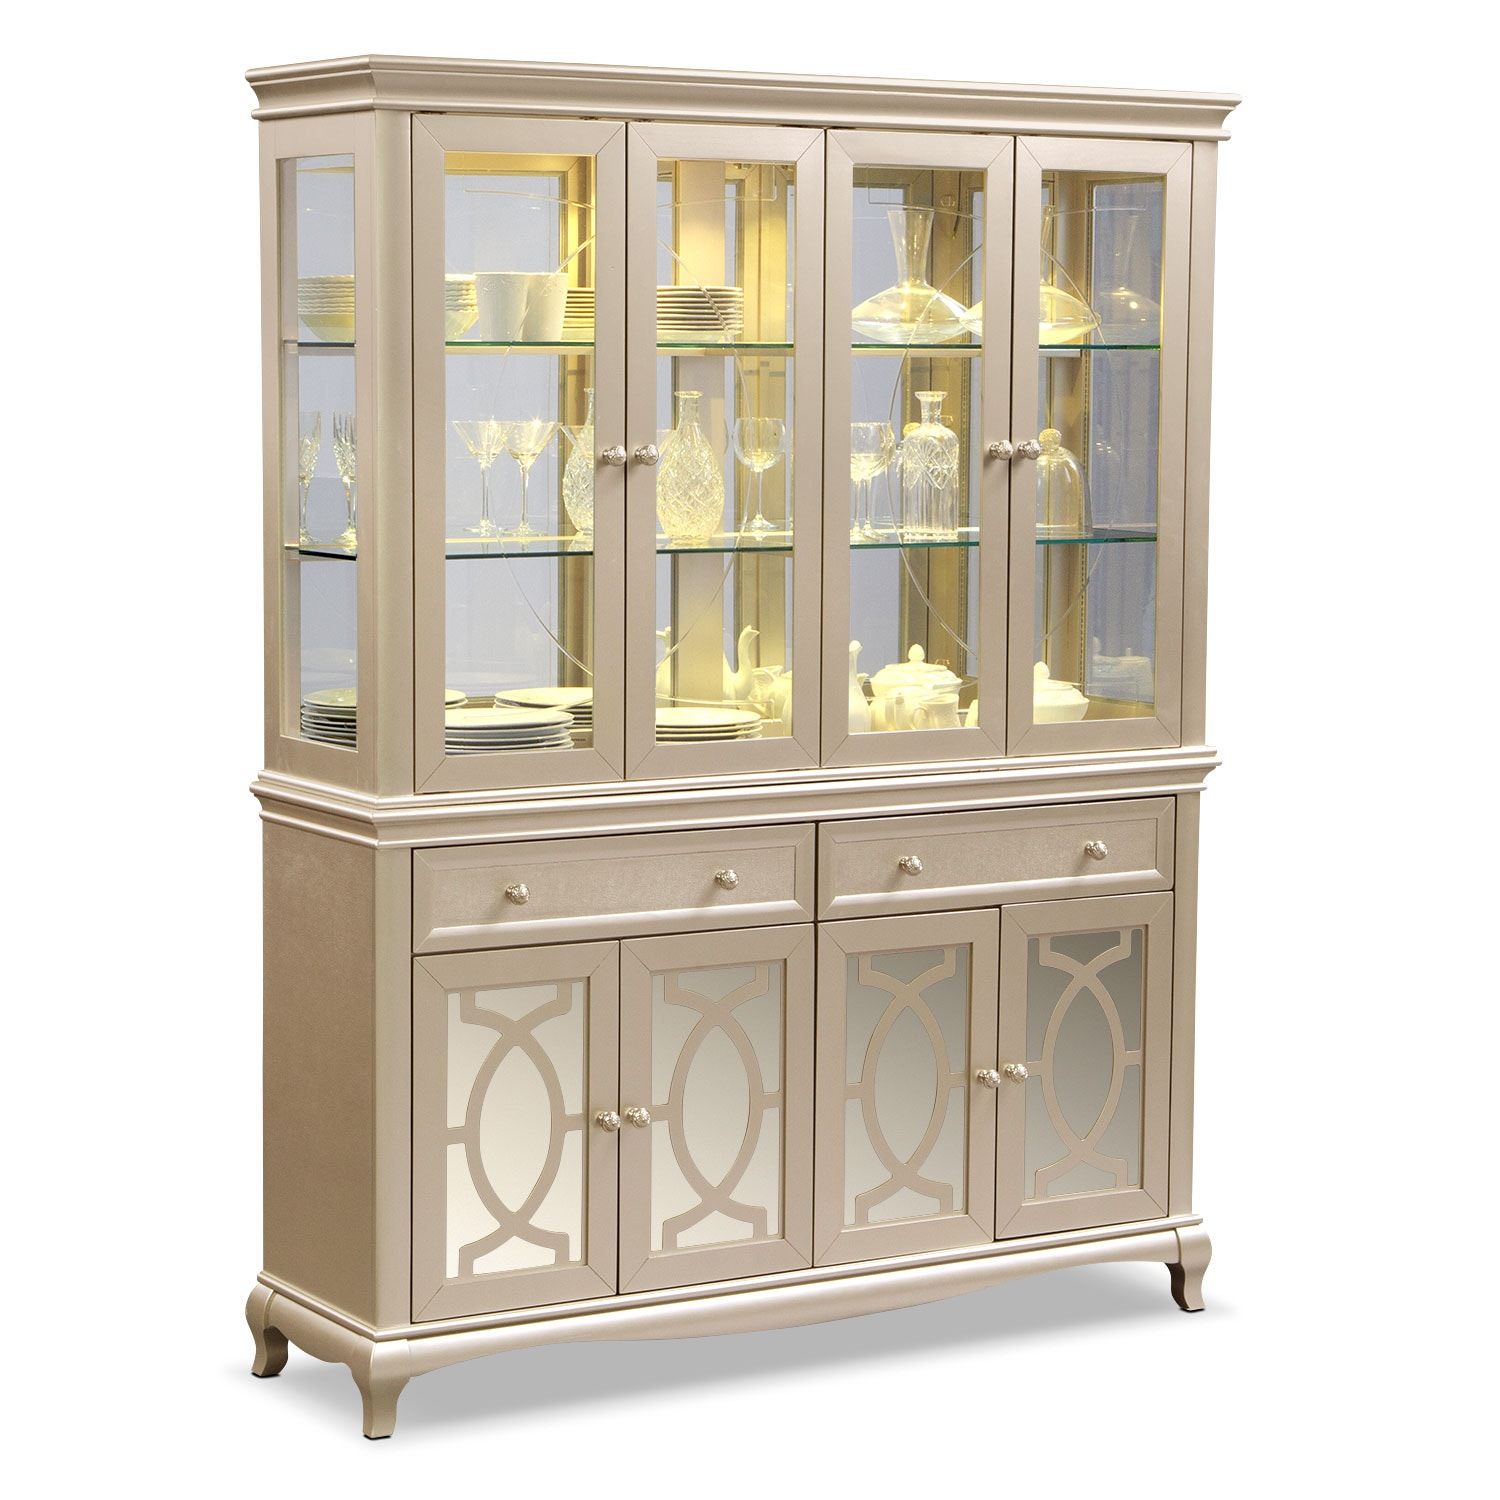 Dining Room Hutch Buffet: Allegro Buffet And Hutch - Platinum